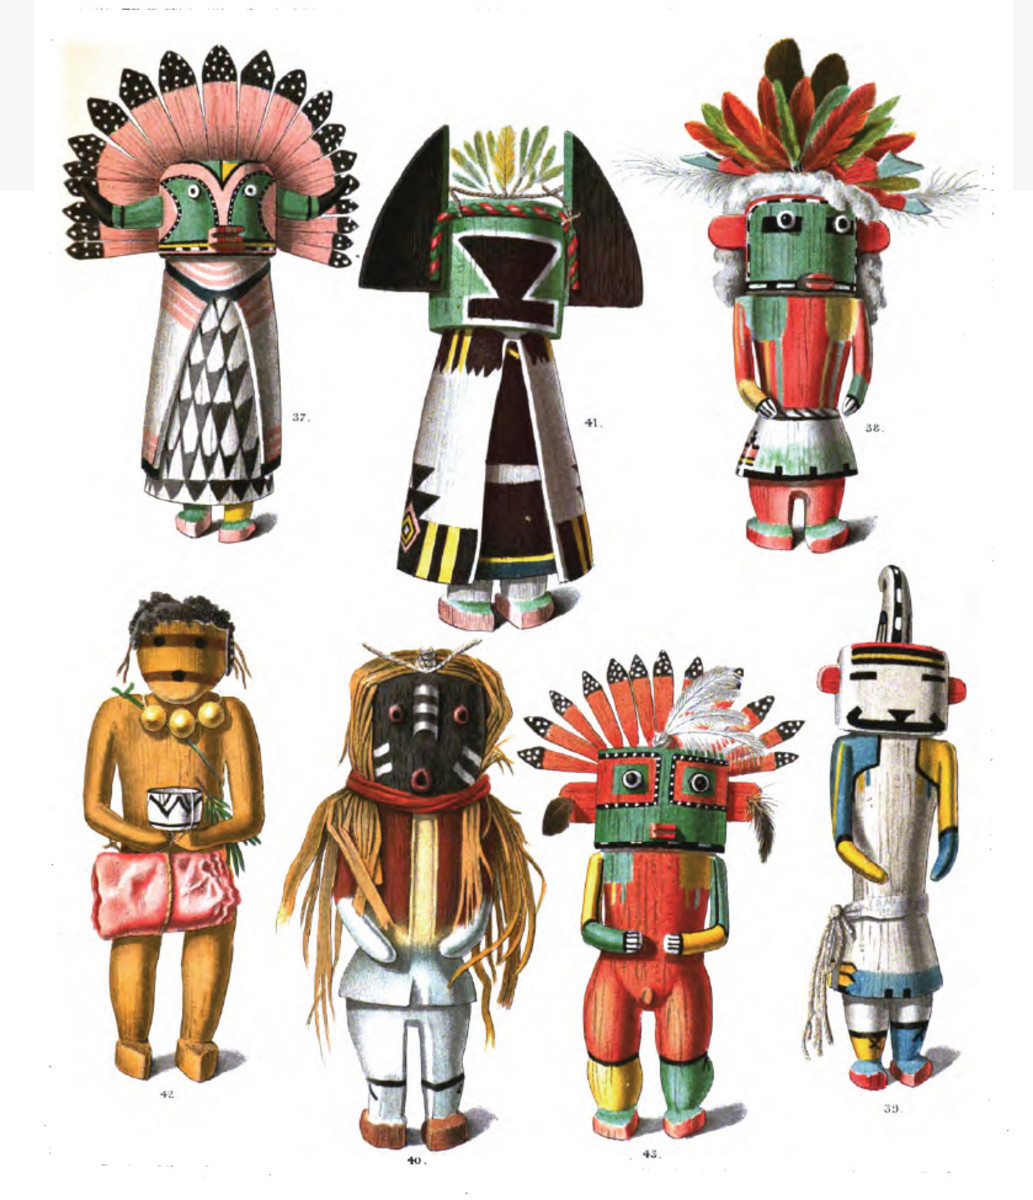 Hopi Kachnia dolls. Some dolls have been sold to museums and private collectors and returned to the Hopi.